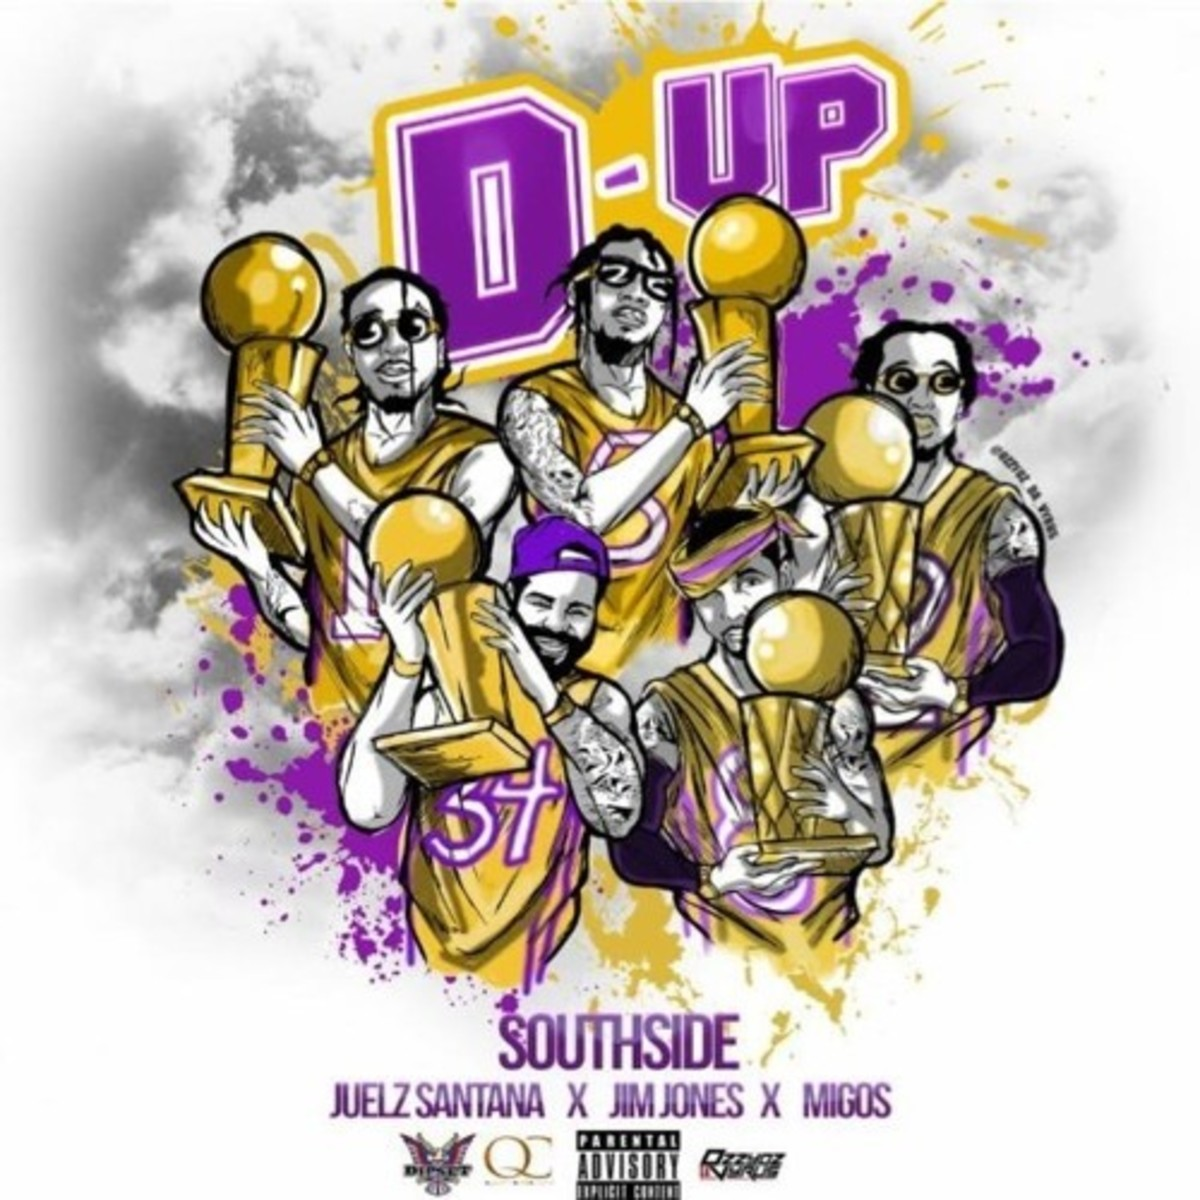 juelz-santana-ds-up.jpg